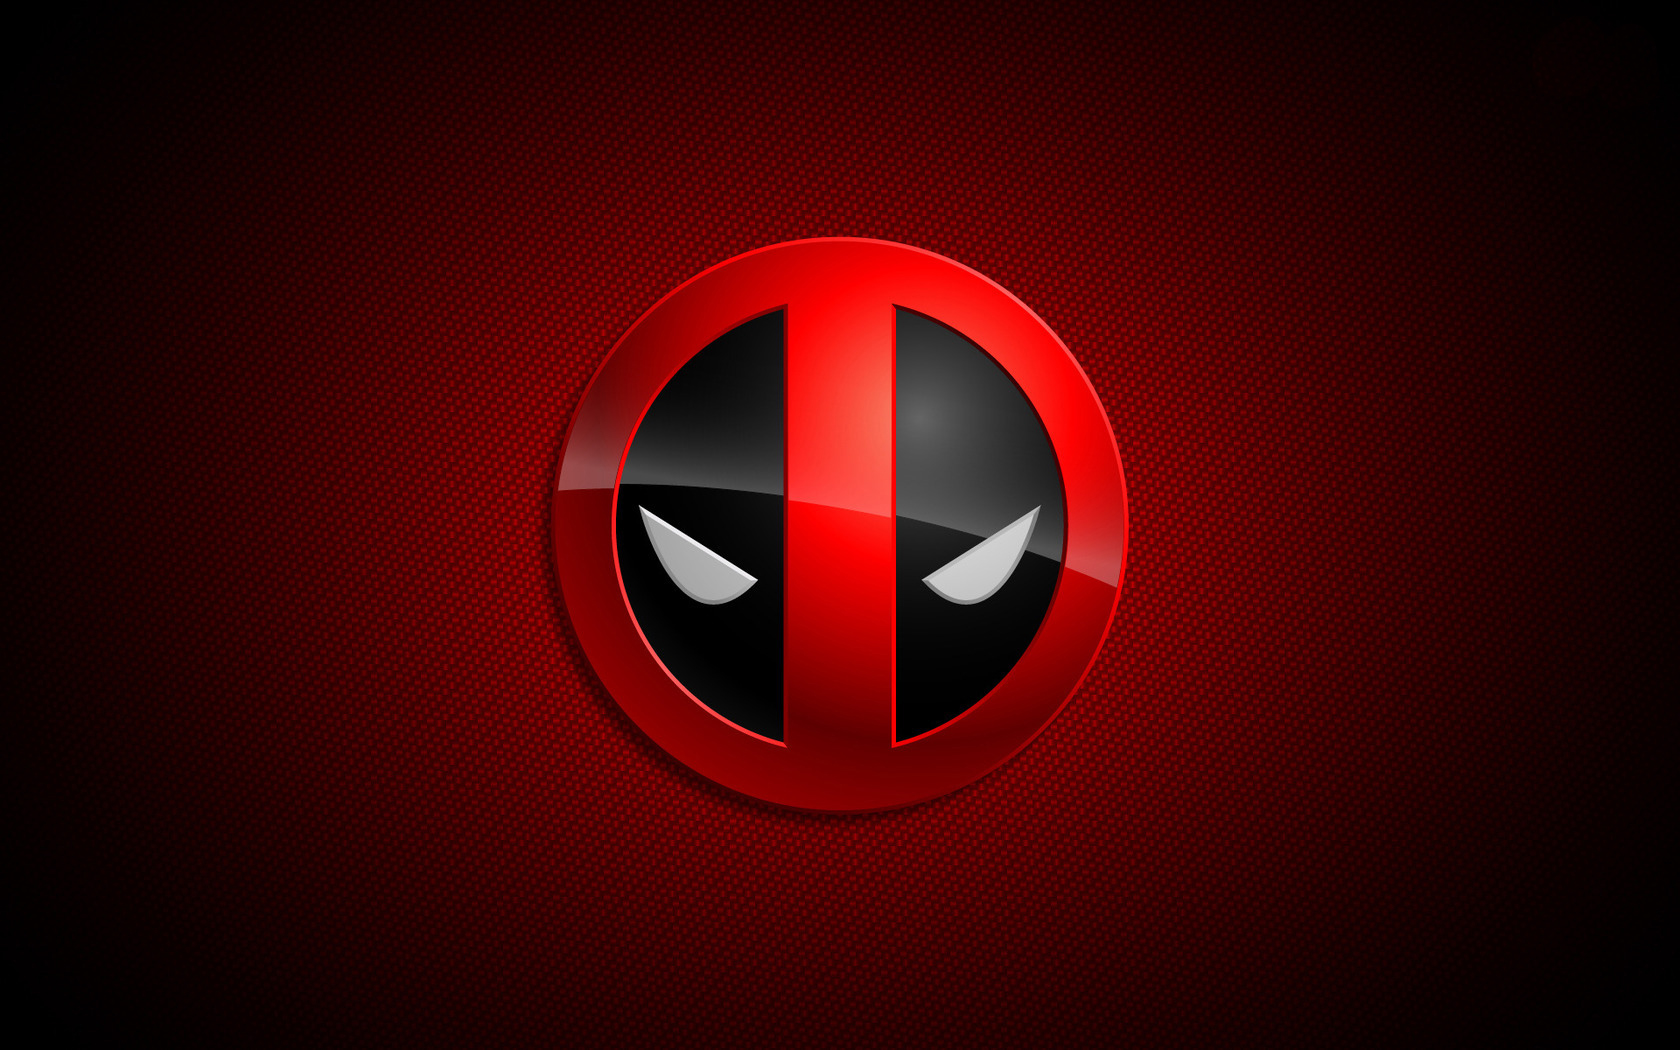 Home HD Wallpapers Games Deadpool Games HD Wallpapers 1680x1050